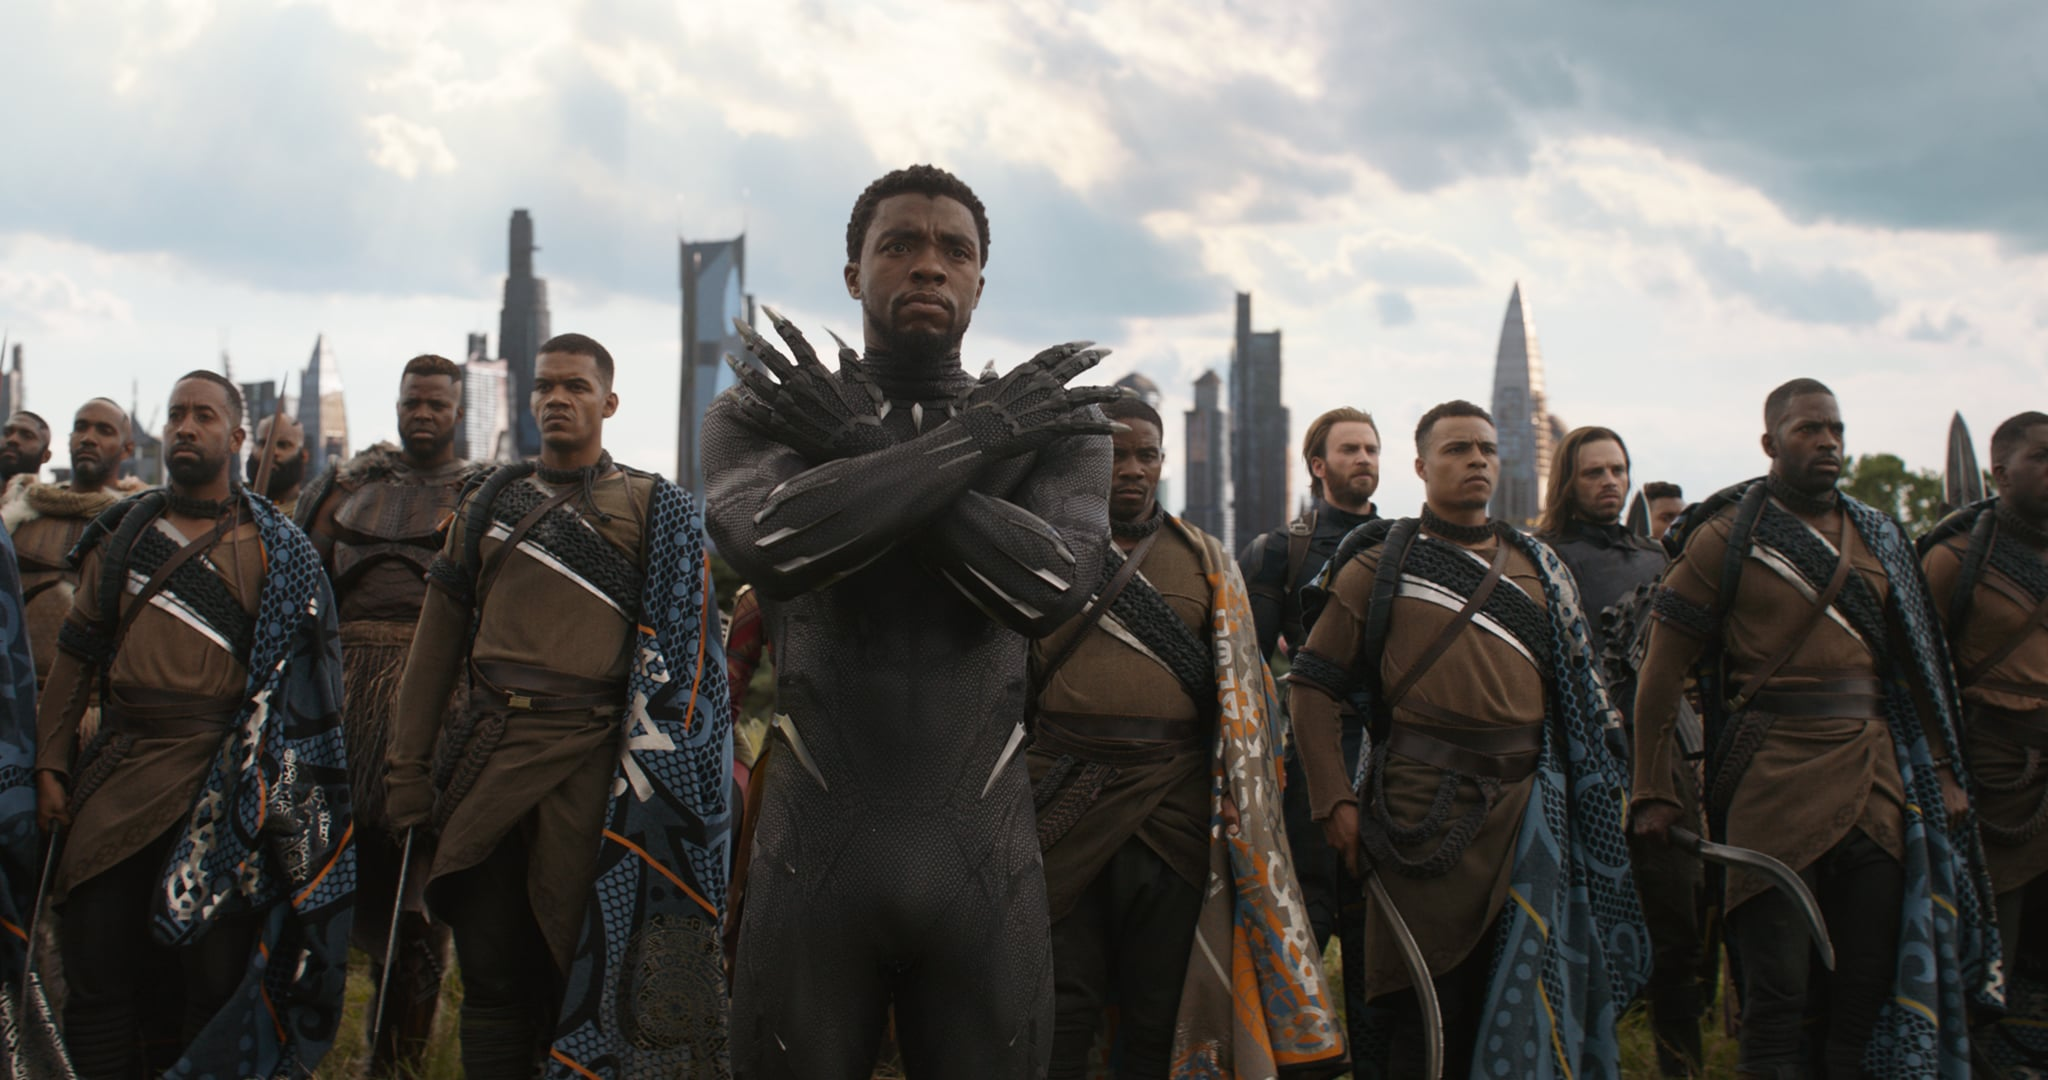 Marvel Studios' AVENGERS: INFINITY WAR..Black Panther/T'Challa (Chadwick Boseman), in b/g M'Baku (Winston Duke), Captain America (Chris Evans) and Winter Soldier (Sebastian Stan)..Photo: Film Frame..©Marvel Studios 2018